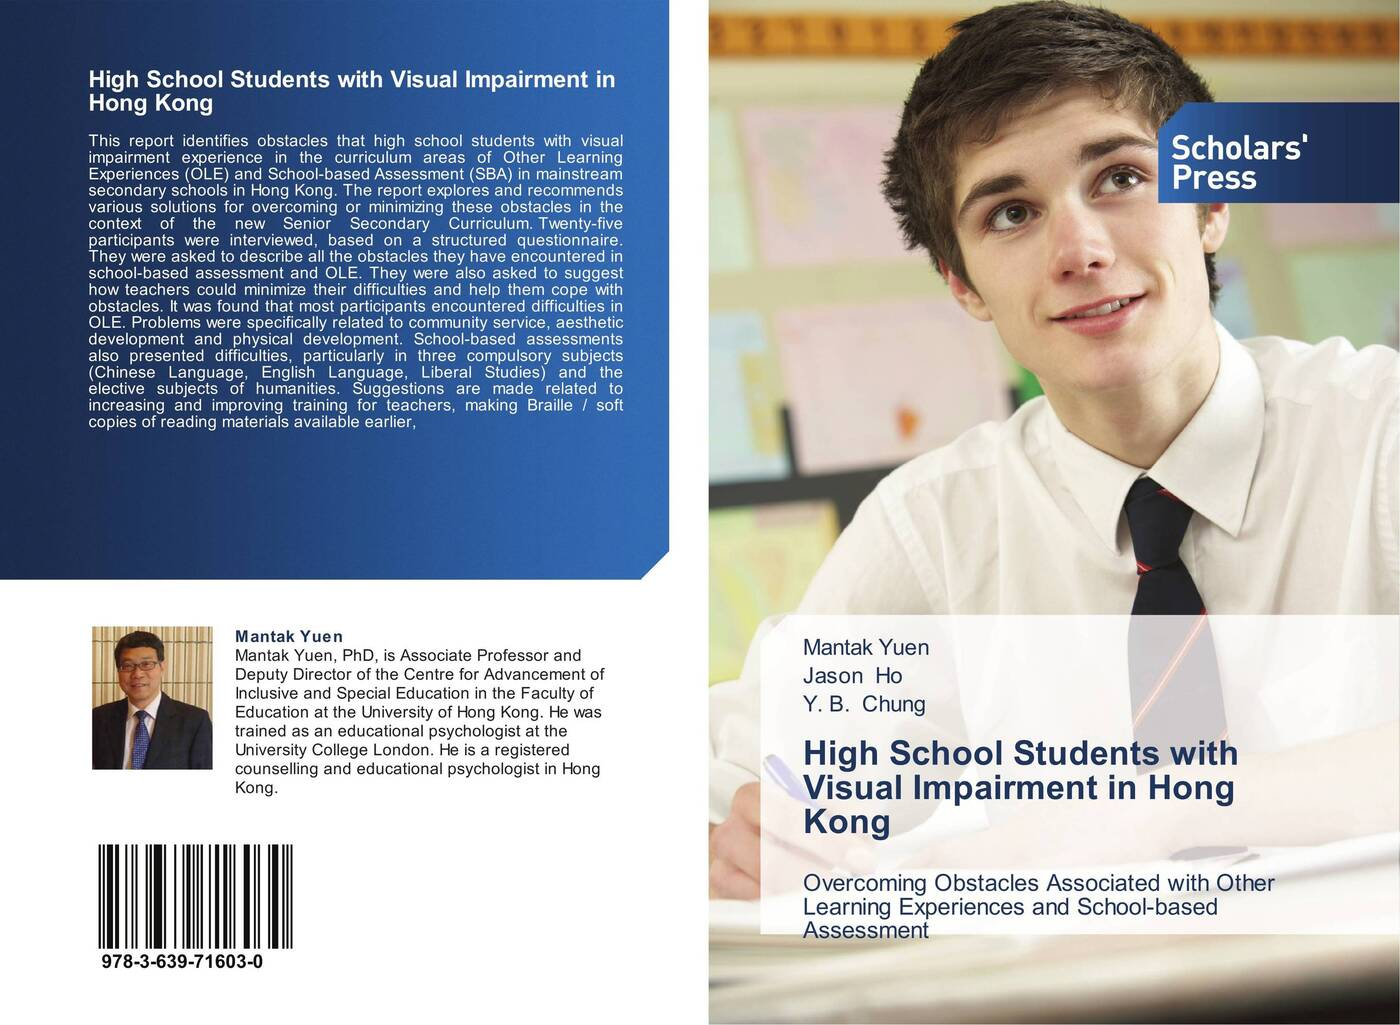 Фото - Mantak Yuen,Jason Ho and Y. B. Chung High School Students with Visual Impairment in Hong Kong paul fletcher language development and language impairment a problem based introduction